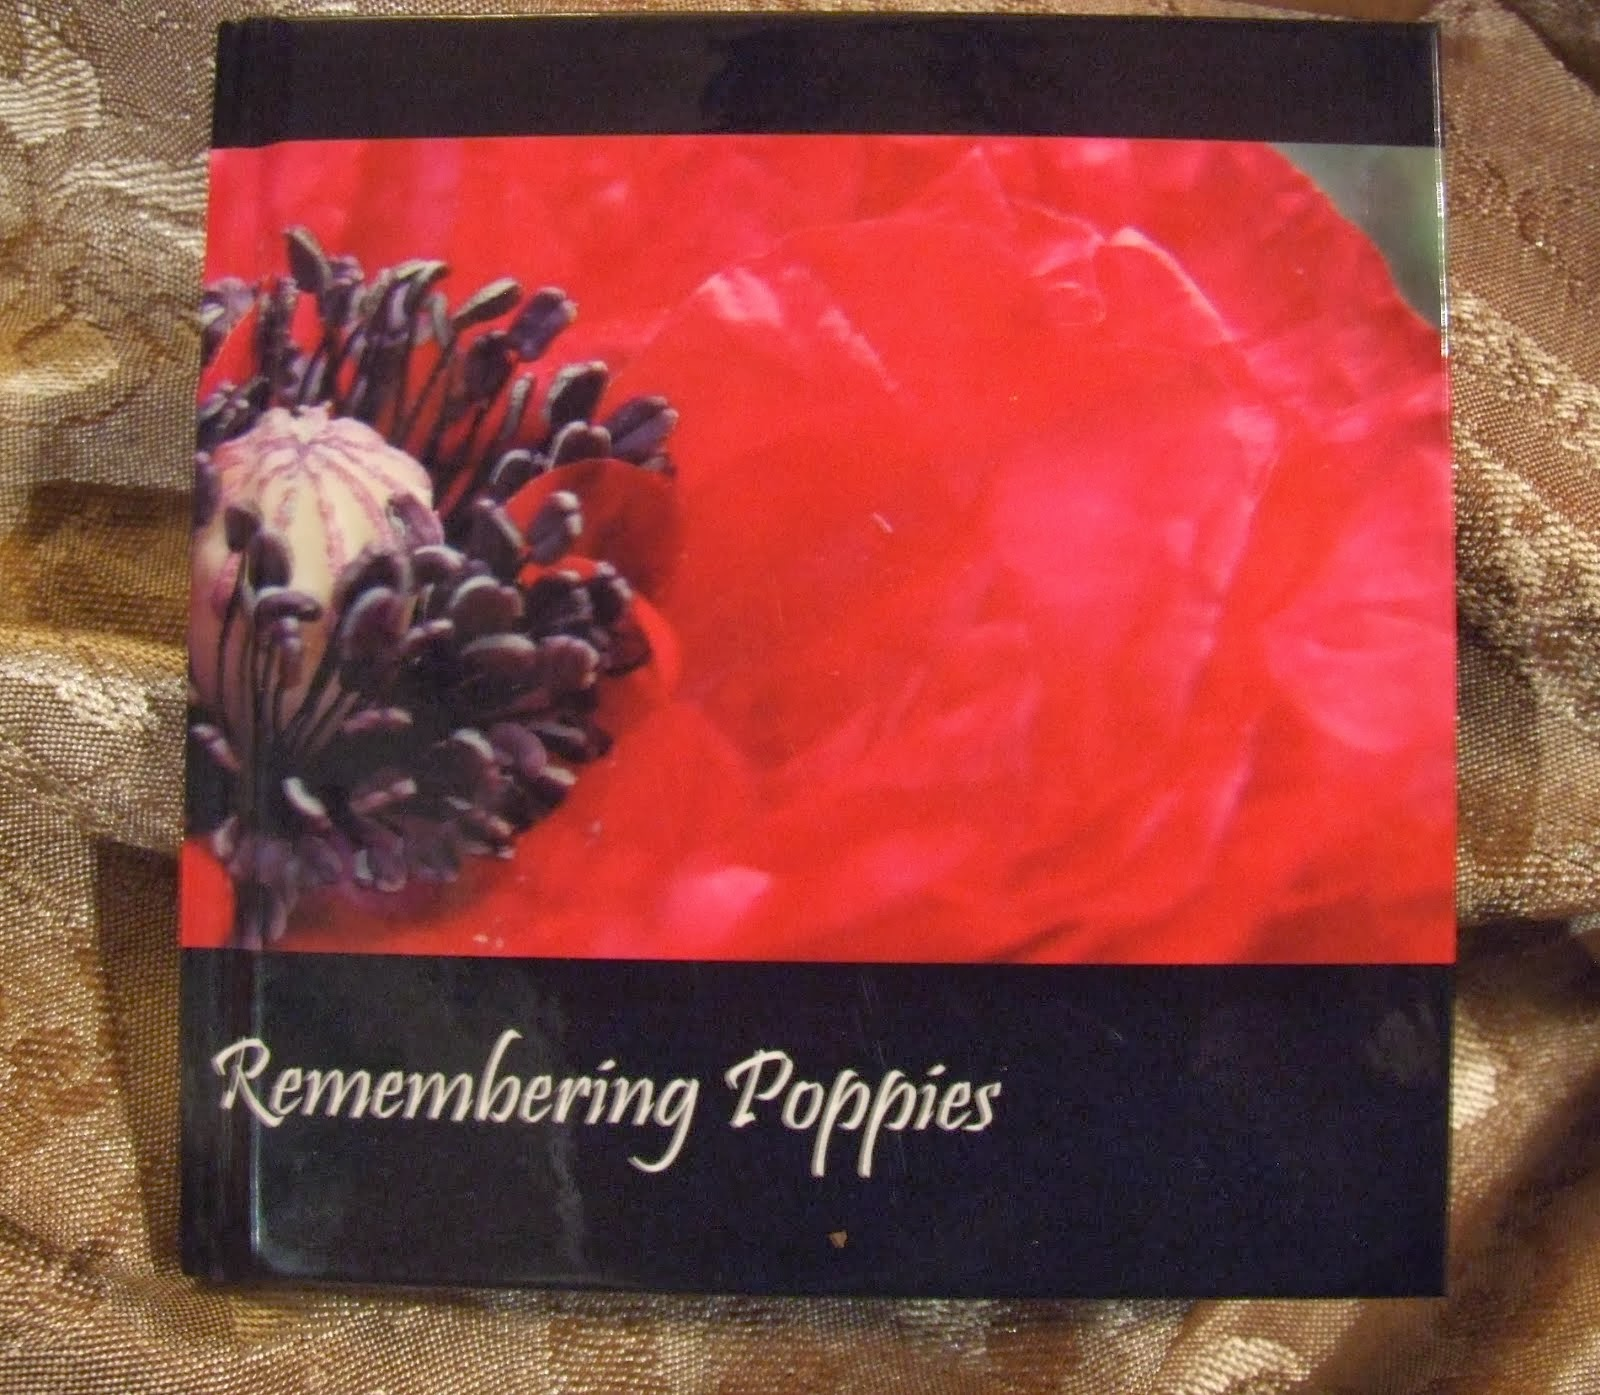 Remembering Poppies